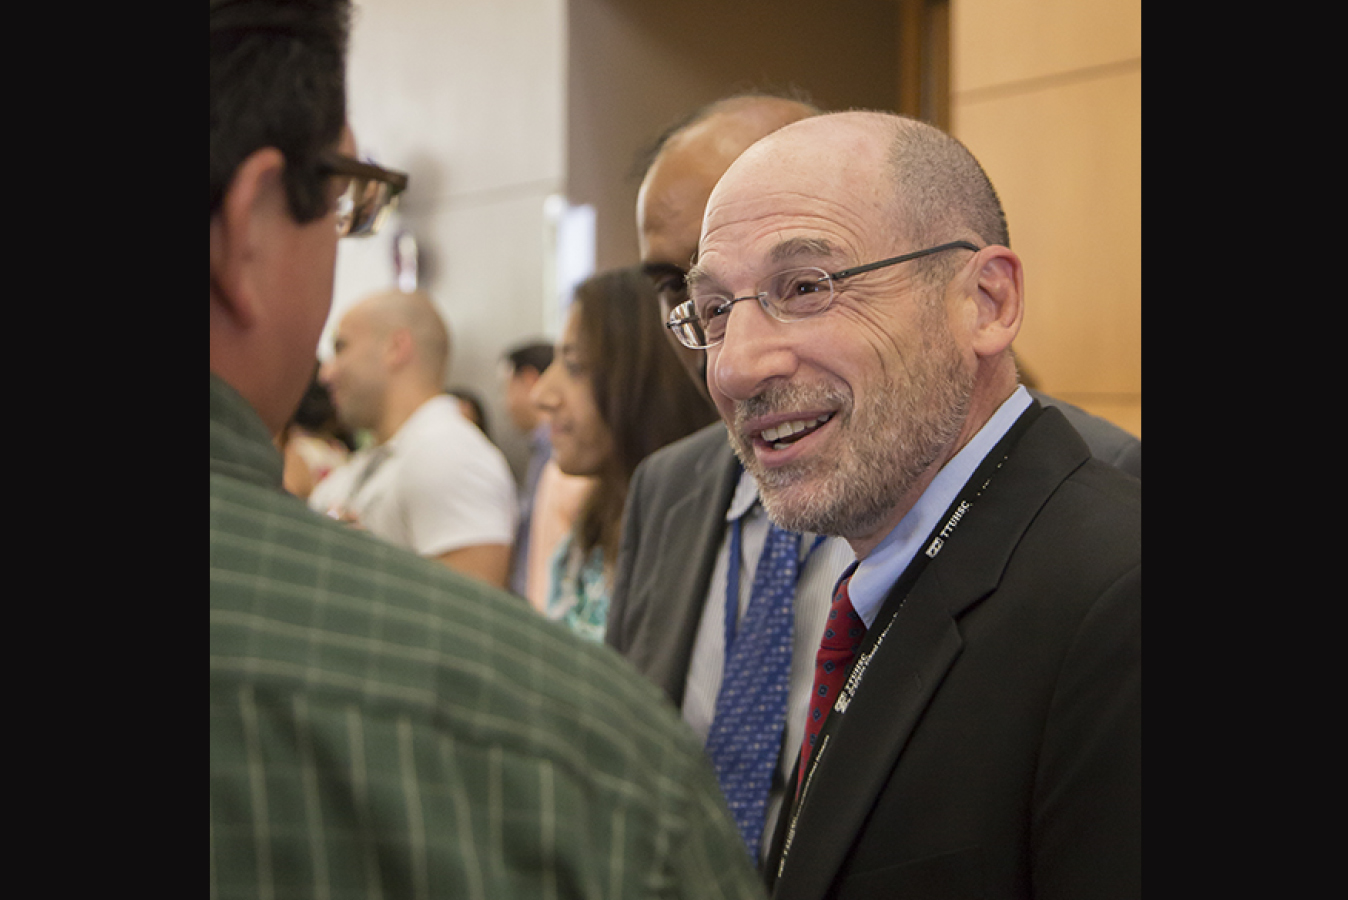 Welcoming Reception for New Vice President of Research Peter Rotwein, M.D.